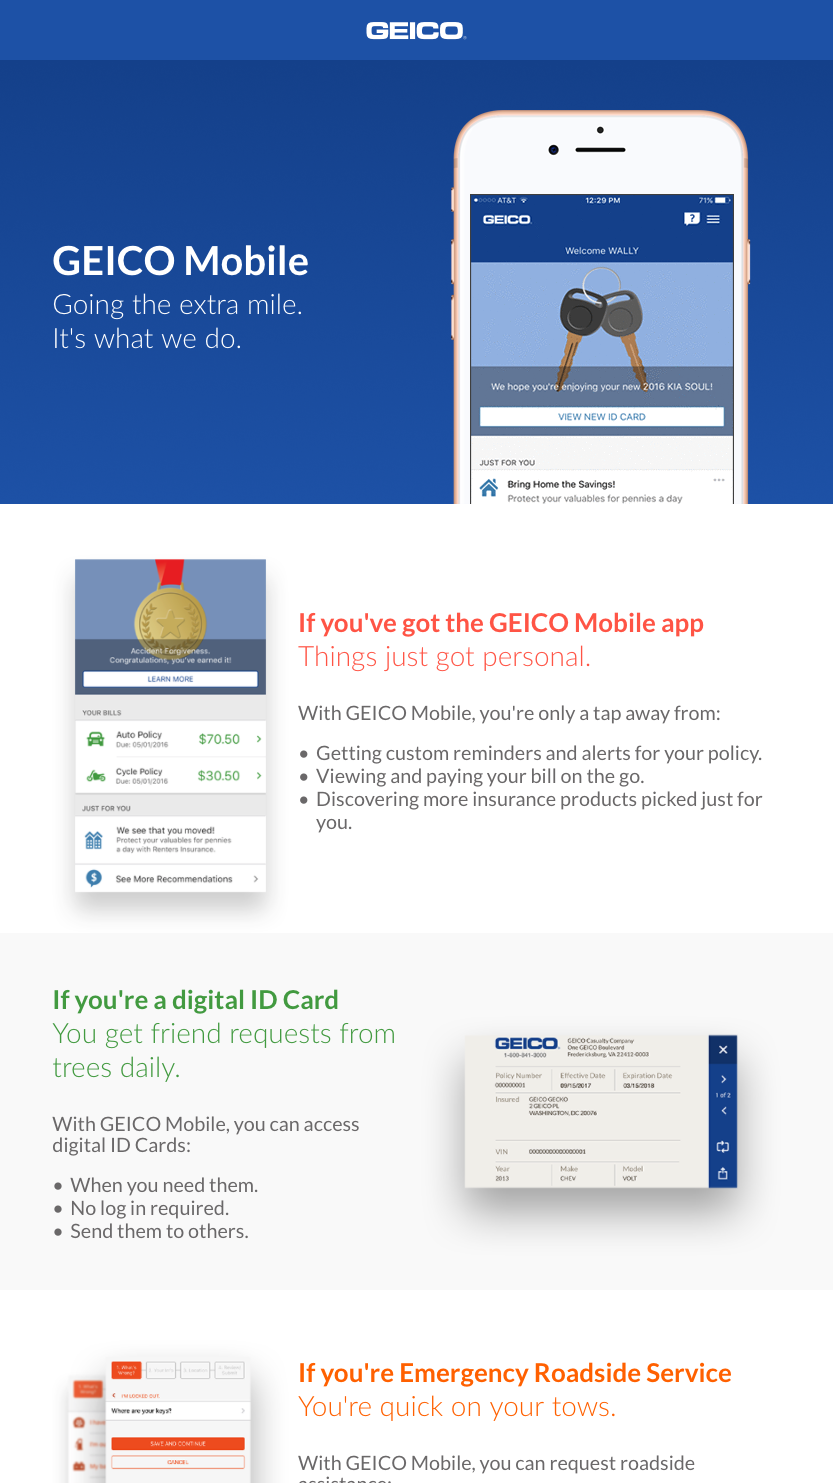 image of GEICO Wins 2017 Best Insurance Mobile Application Mobile WebAward for GEICO Mobile